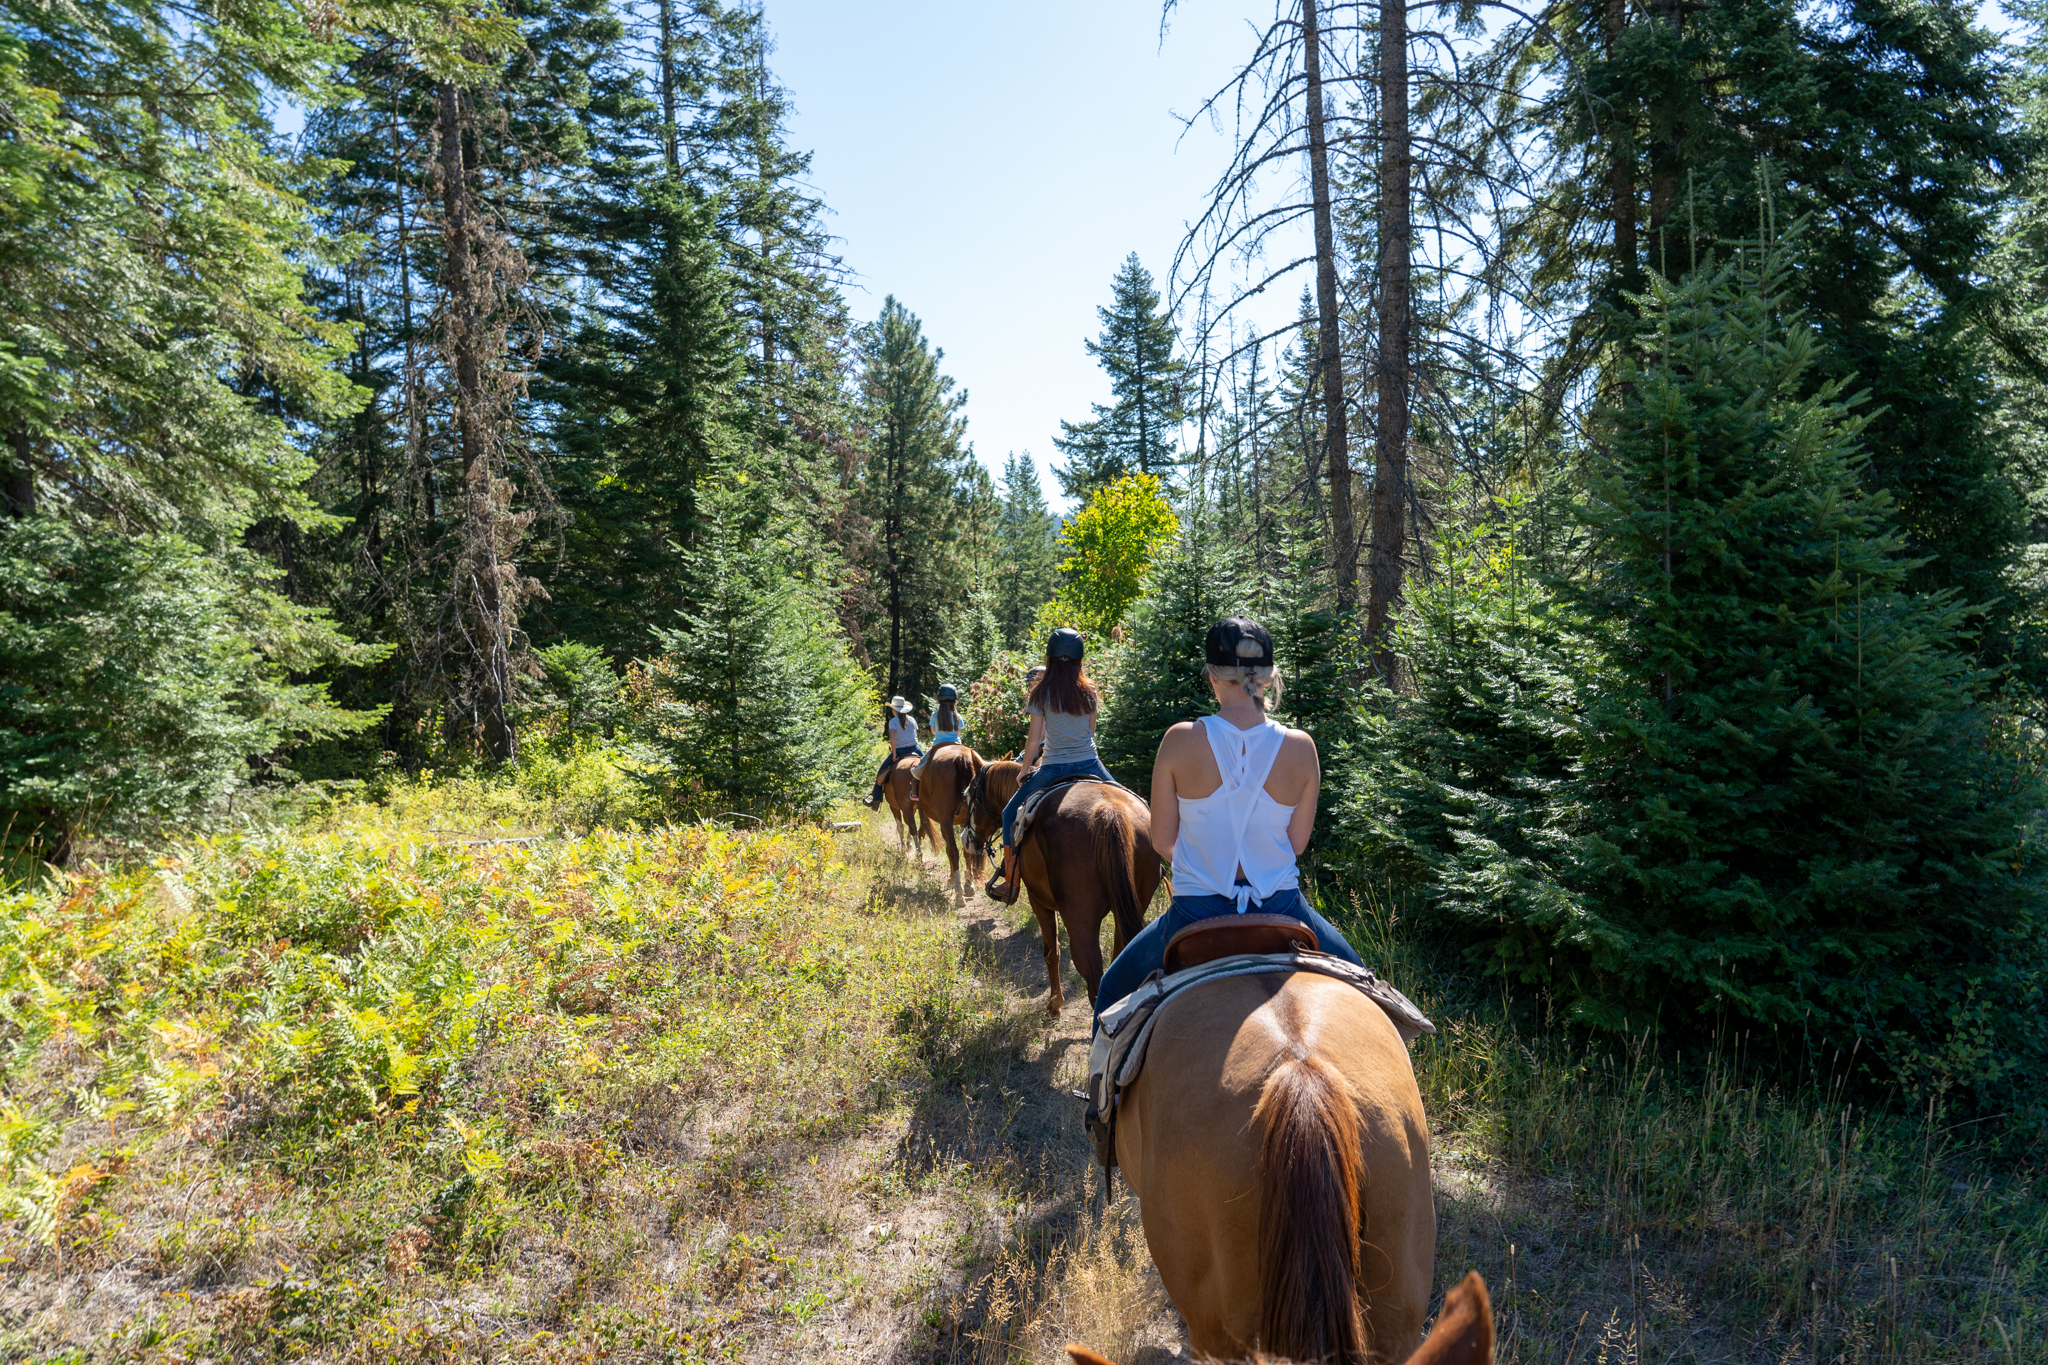 Group on horseback trail ride through forest.